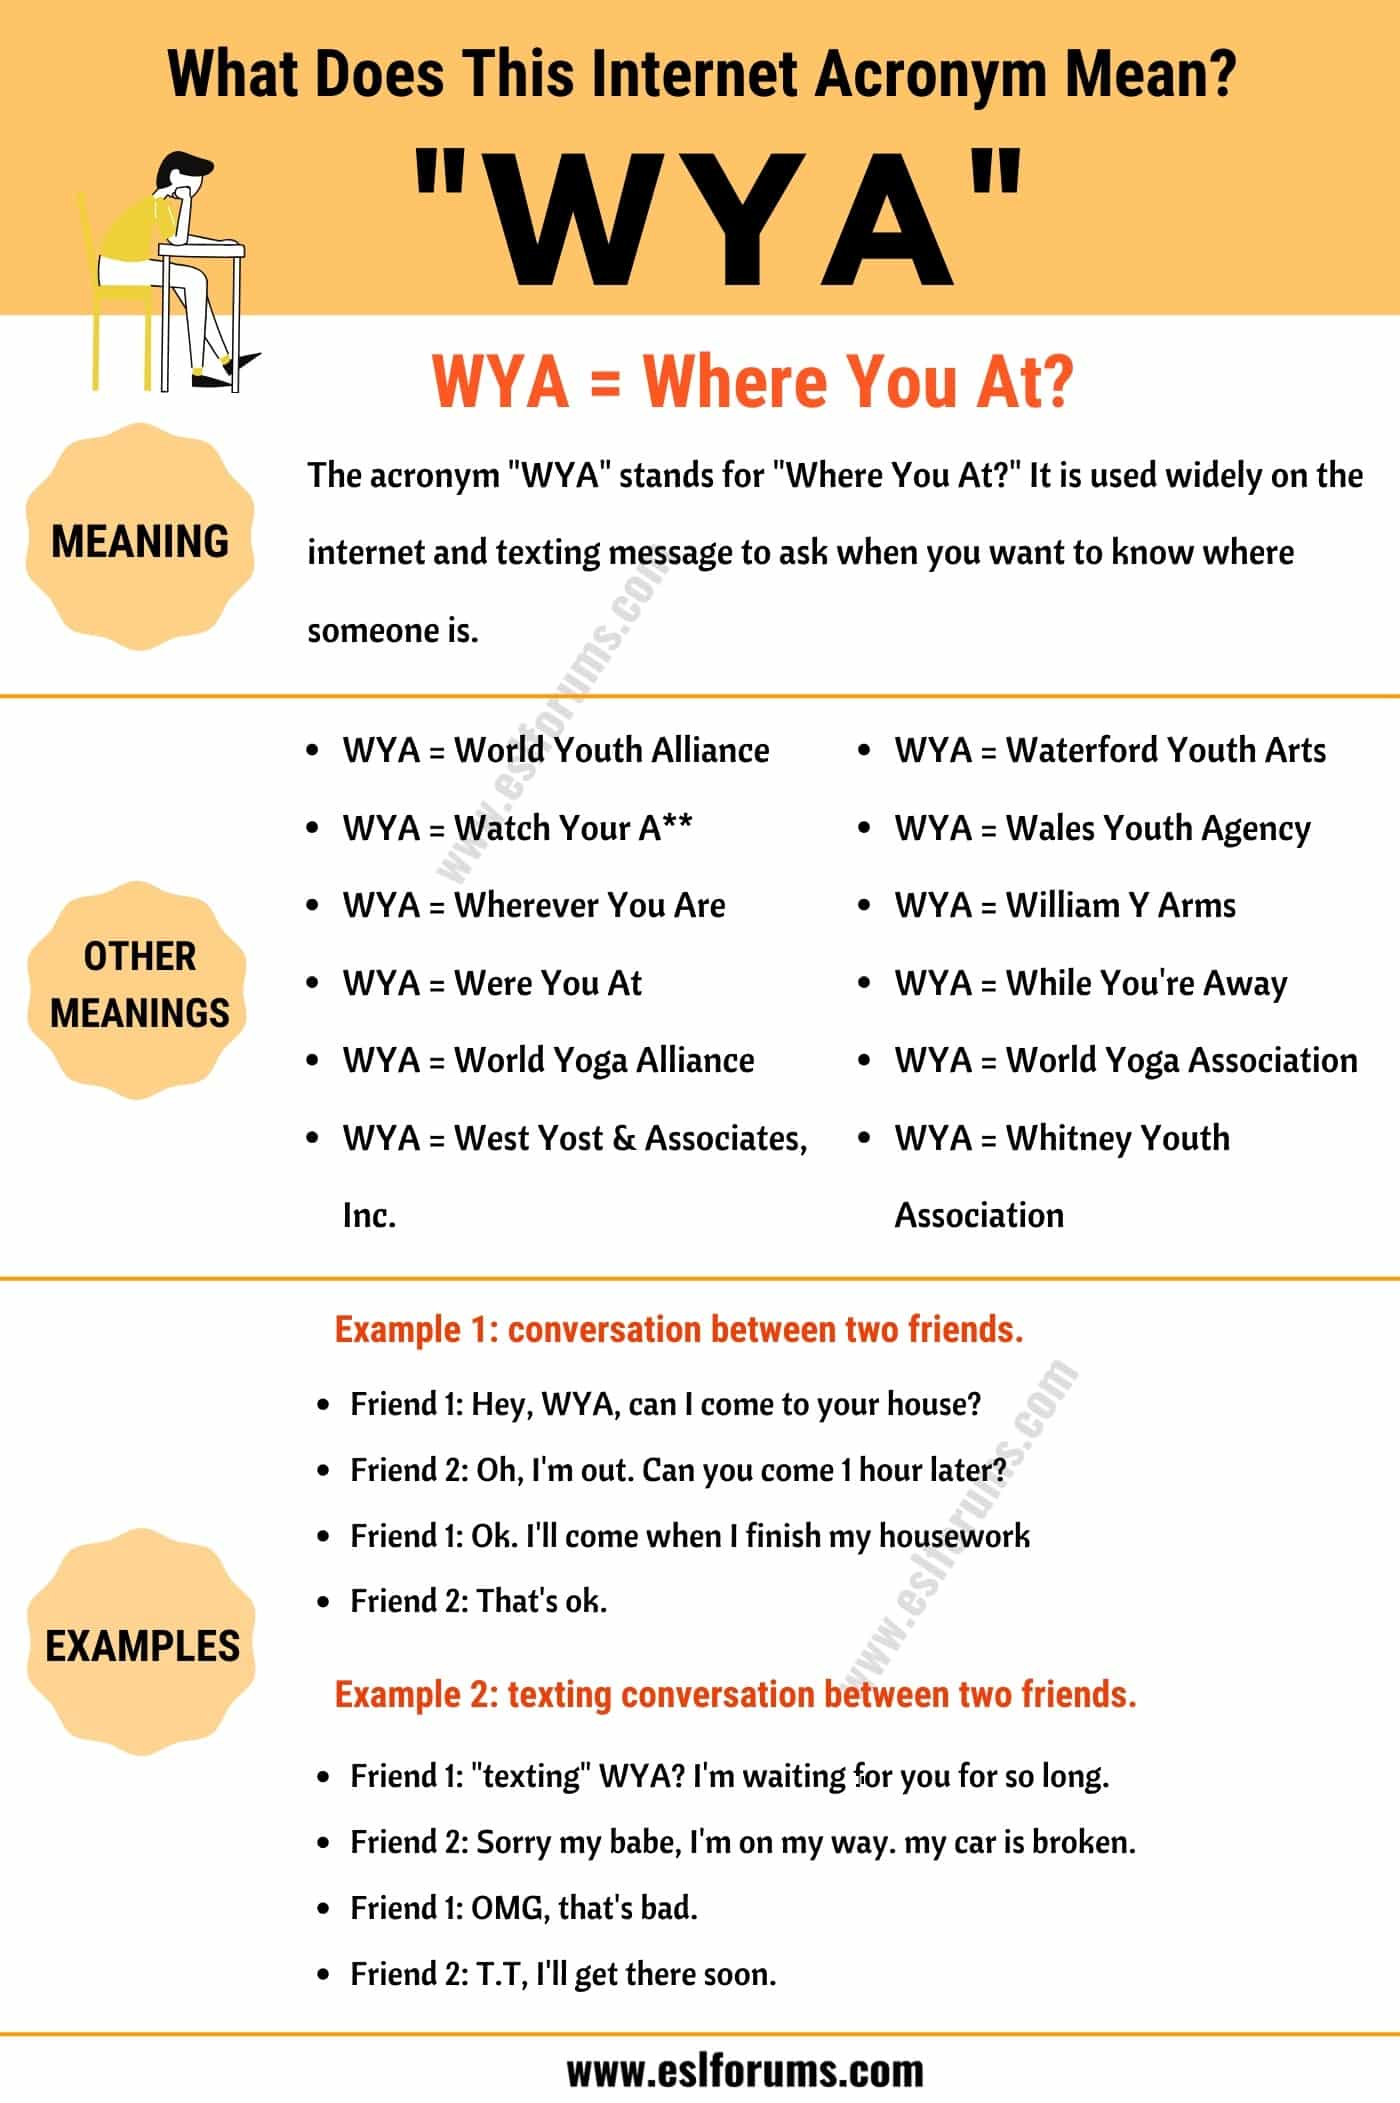 WYA Meaning: What Does This Popular Acronym Mean and Stand For?